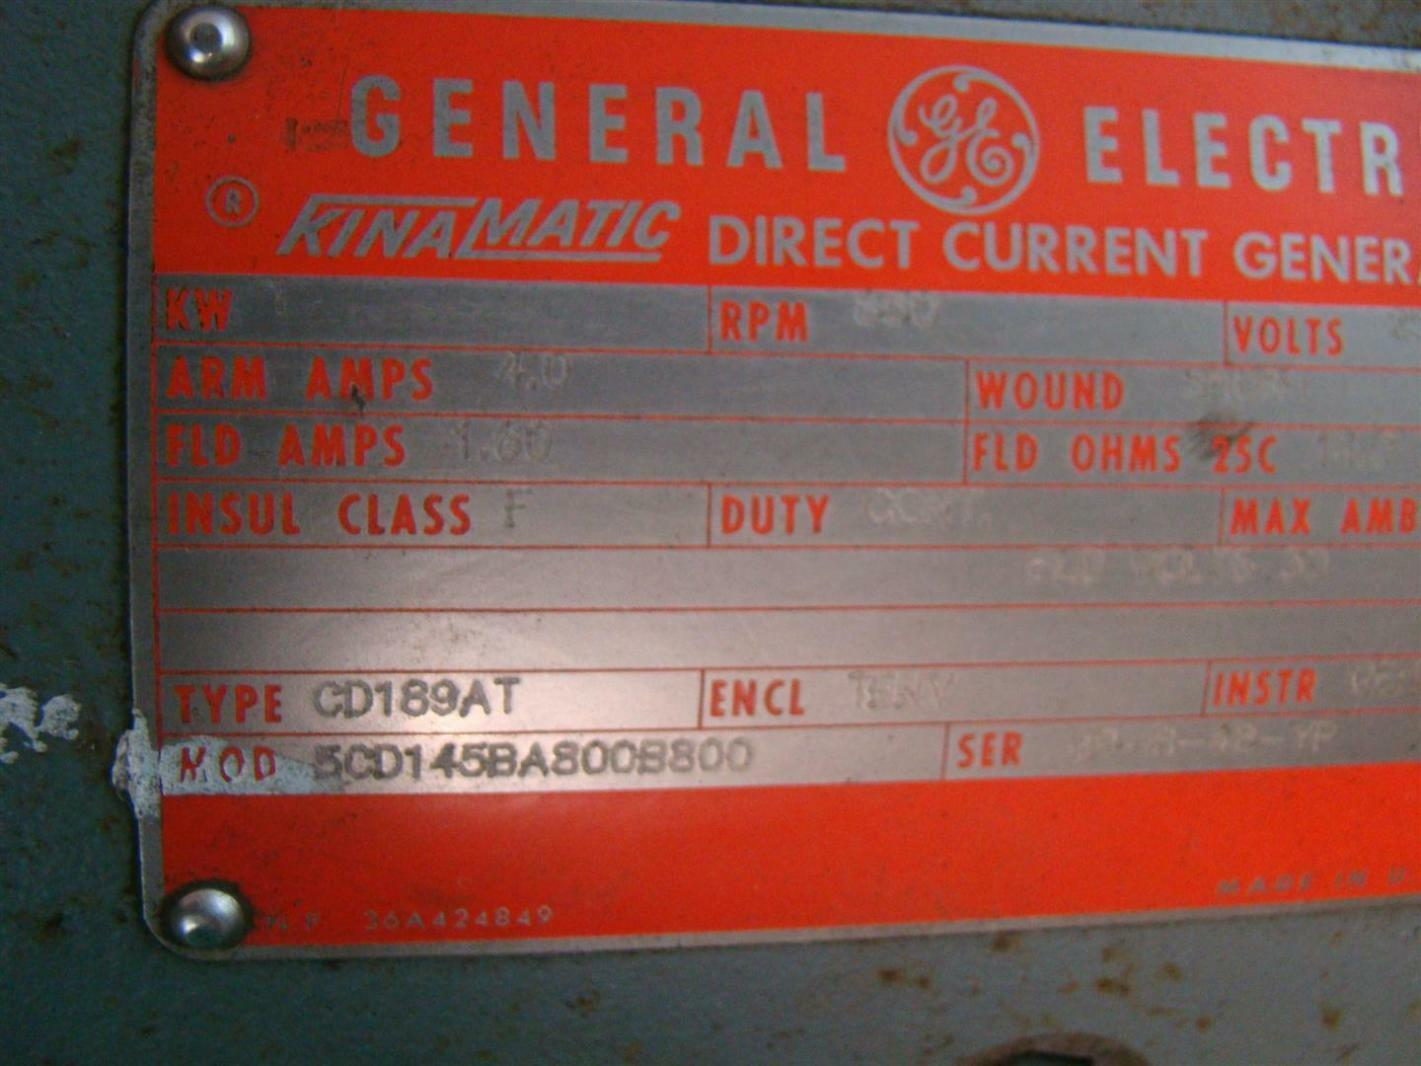 General electric dc motor shunt wound 1kw 850rpm 230v for General electric motor company